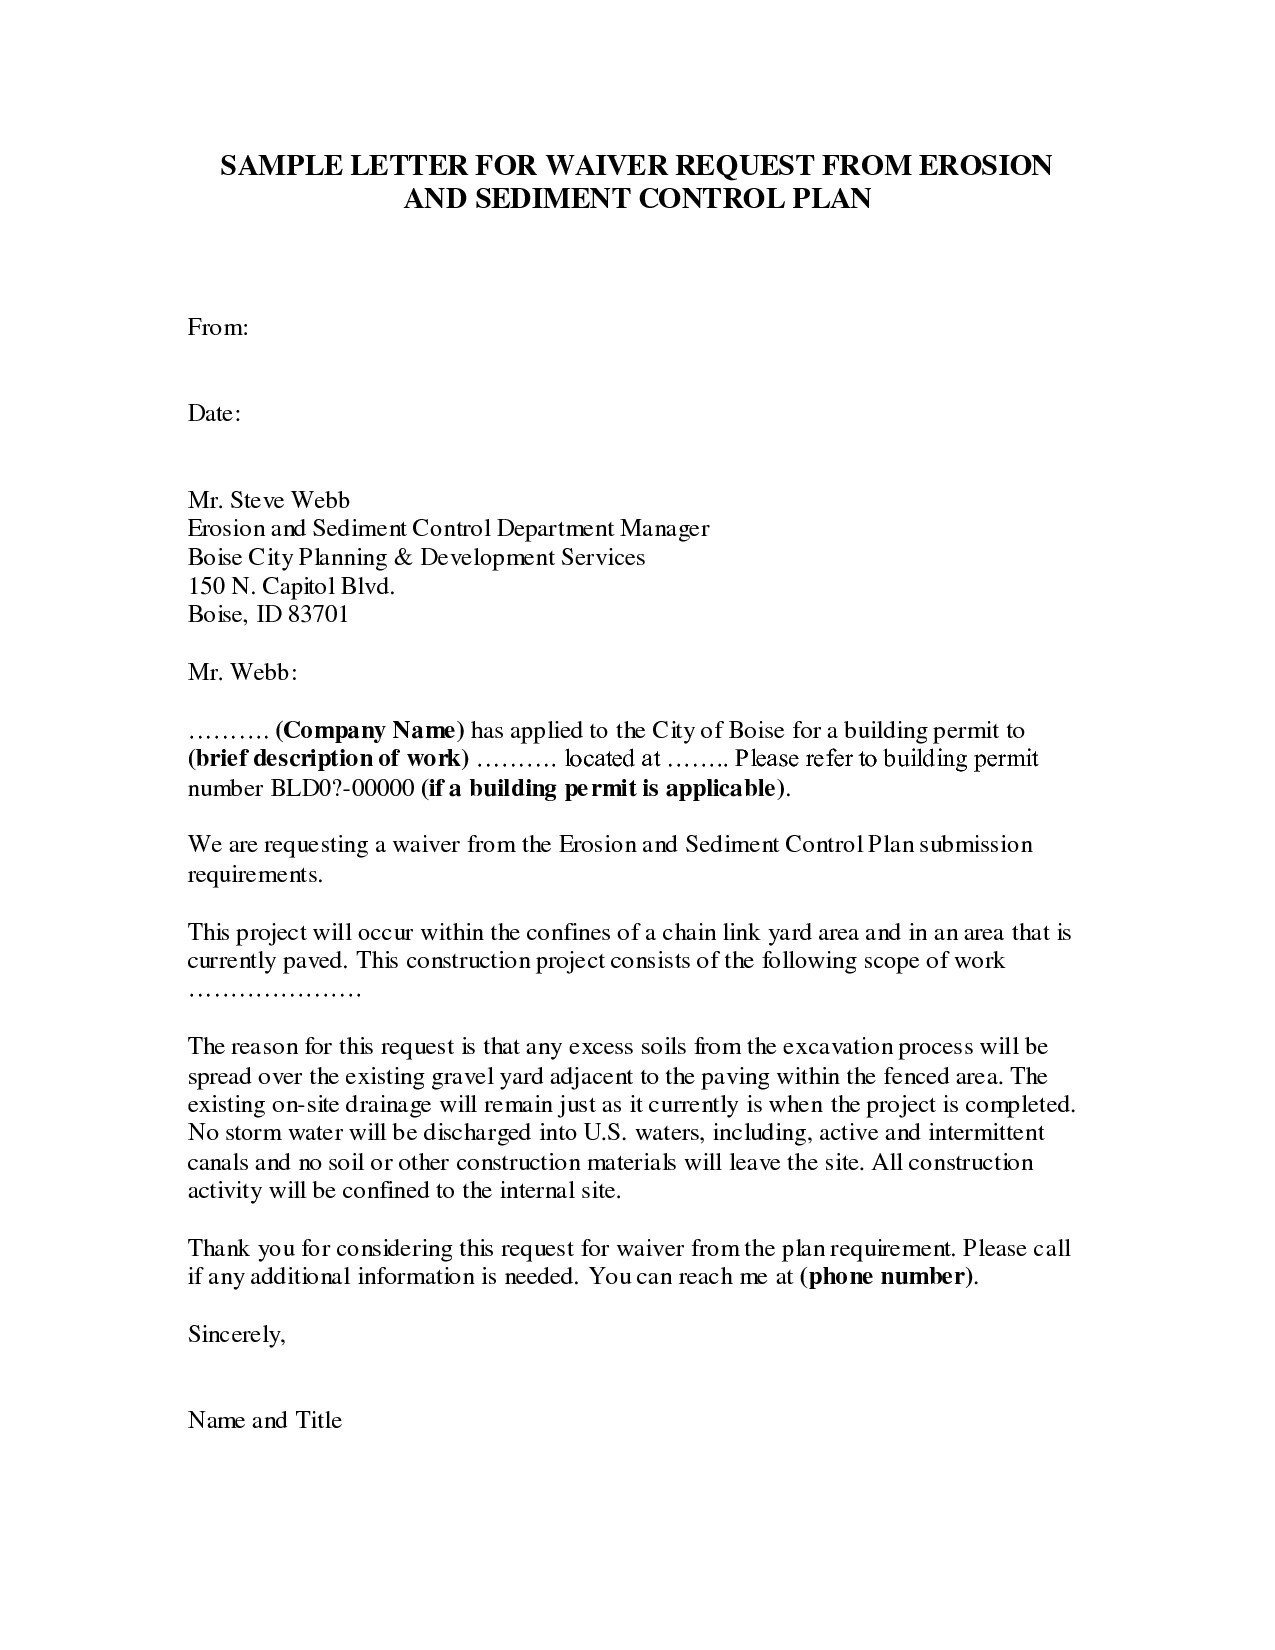 Business Termination Letter Template - Save Sample A Job Termination Letter